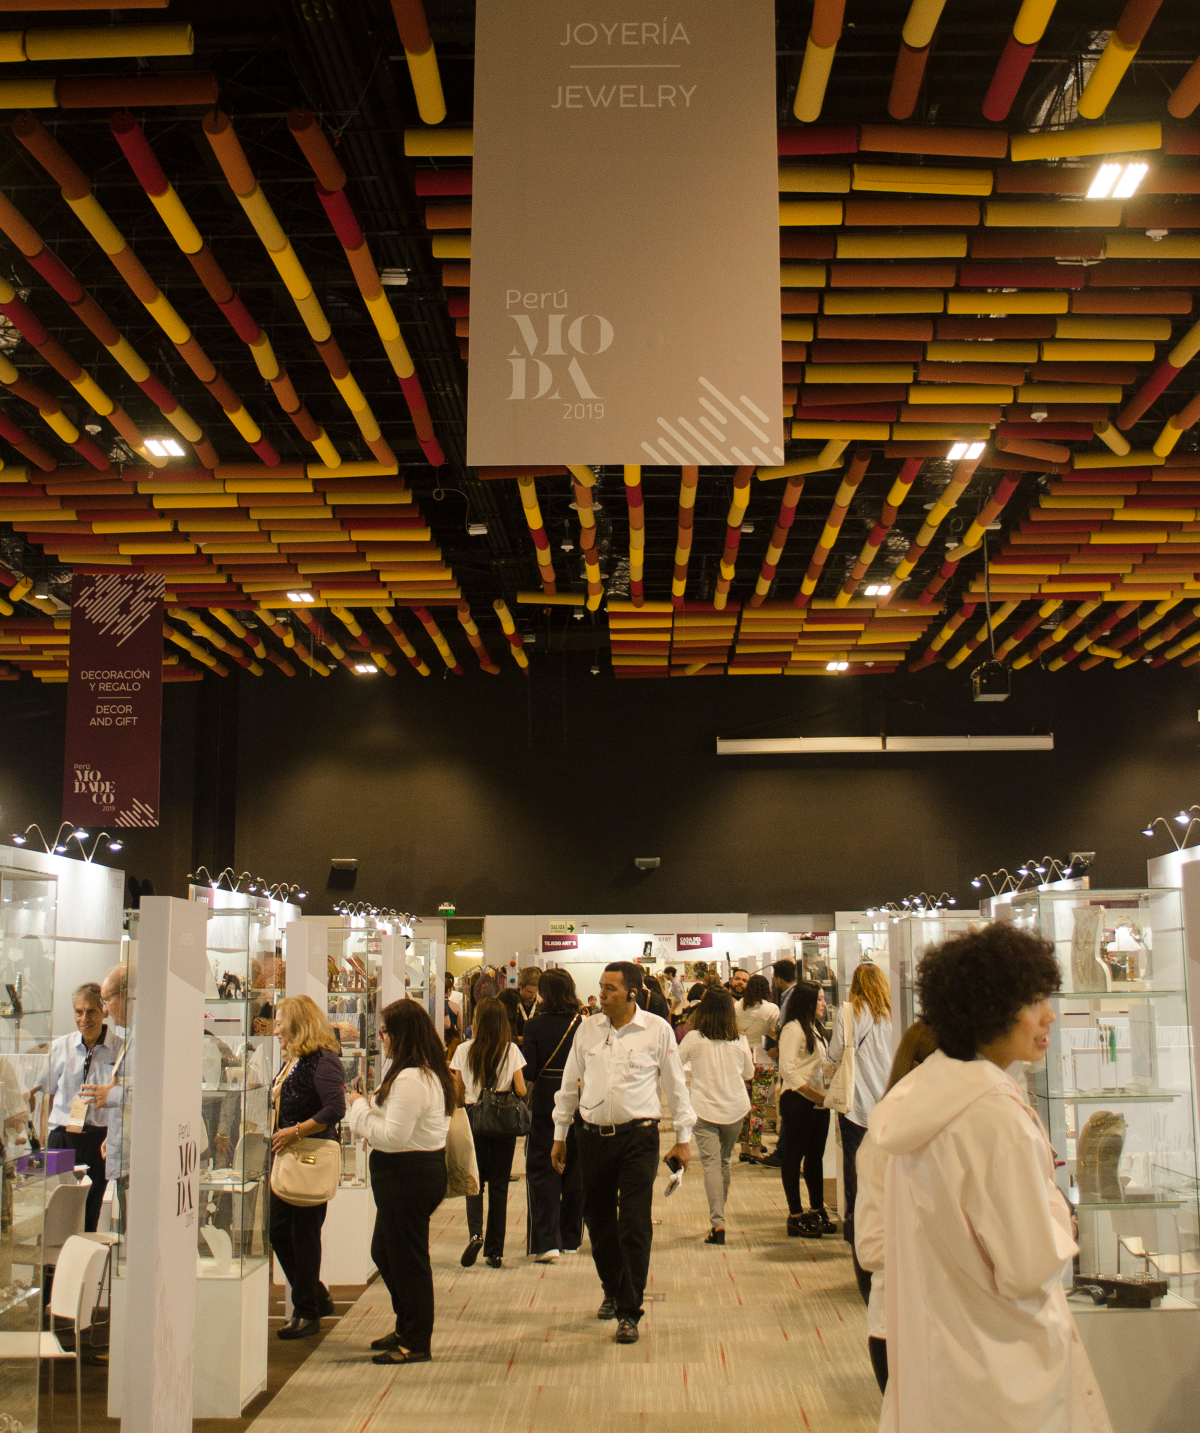 Peru Moda, Peru's bi-annual textiles fair, showcased growing eco-friendly products as the nation looks to bolster exports and bounce back from Covid.